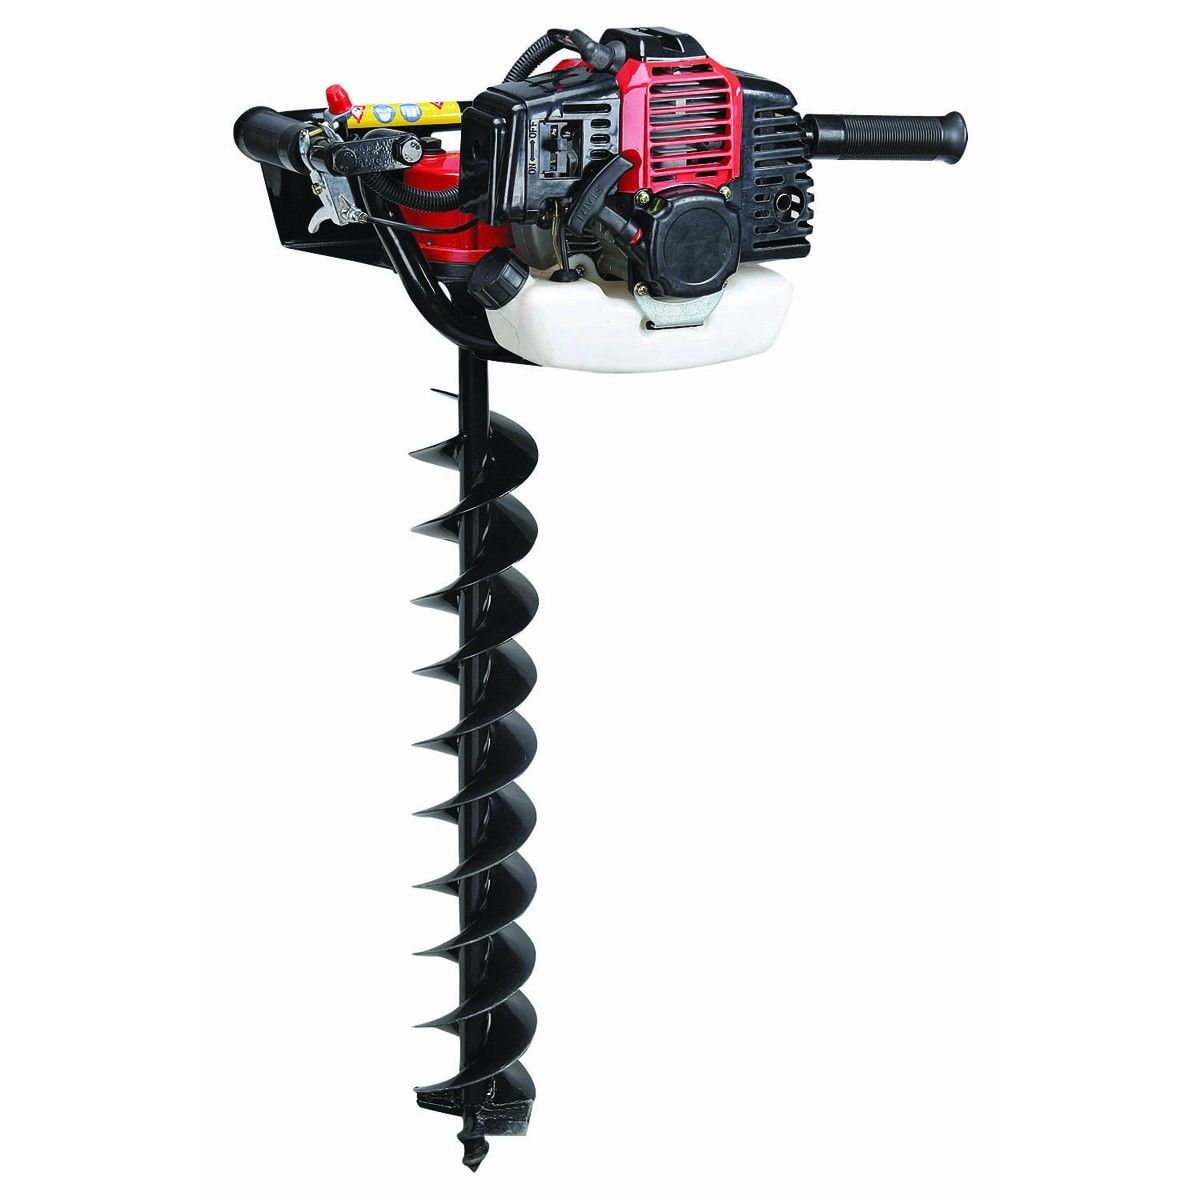 179 99 At Harbor Freight Tools 1 5 Hp Gasoline Auger Drill We Ll Need One Of These For All The Post Holes We Will Harbor Freight Tools Digging Tools Tools